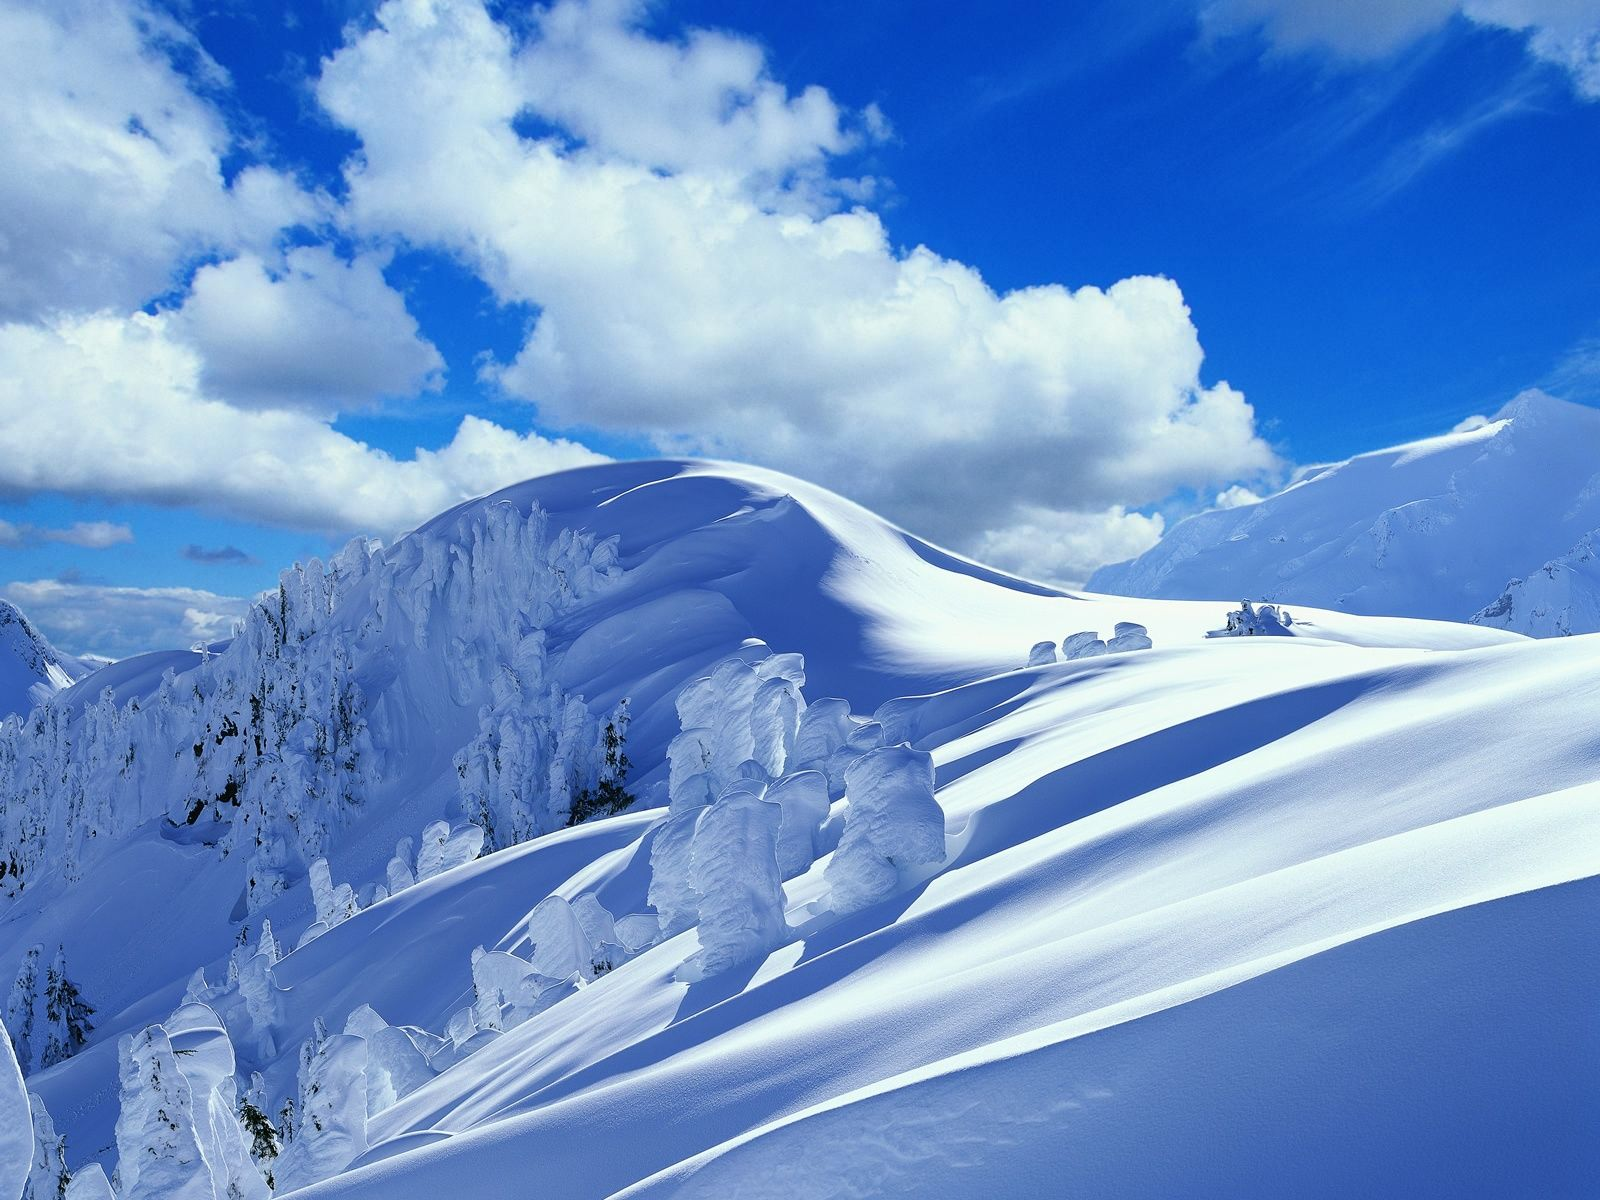 Colorado Snowy Mountains Mountains snowy winter nature HD